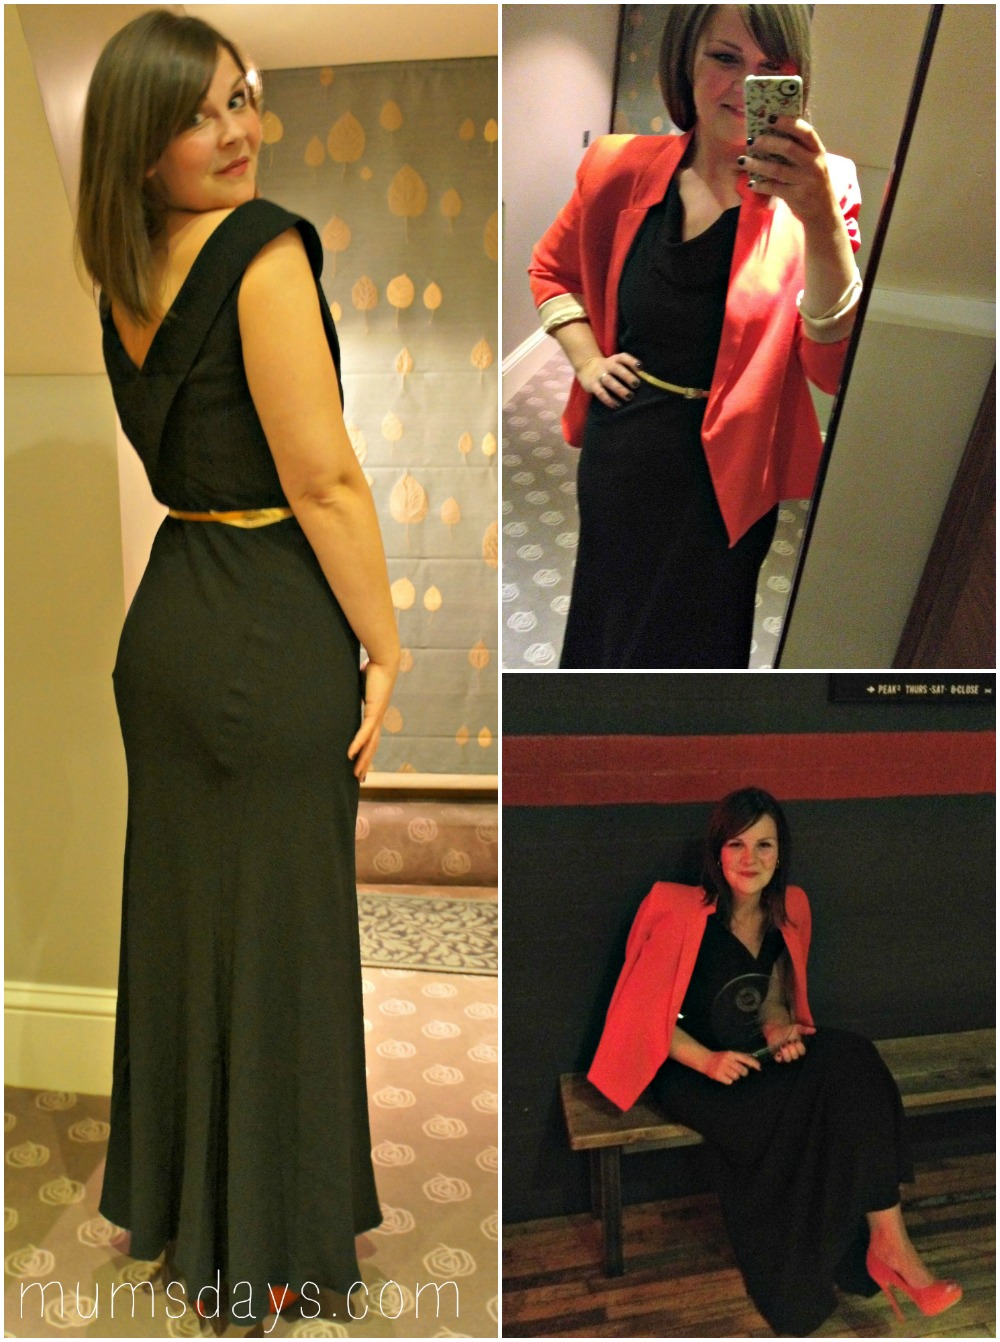 Fever London and the NE Blogger Awards - click here for a review of my winning Fever London dress and the award winning evening! http://mumsdays.com/fever-london-awards/